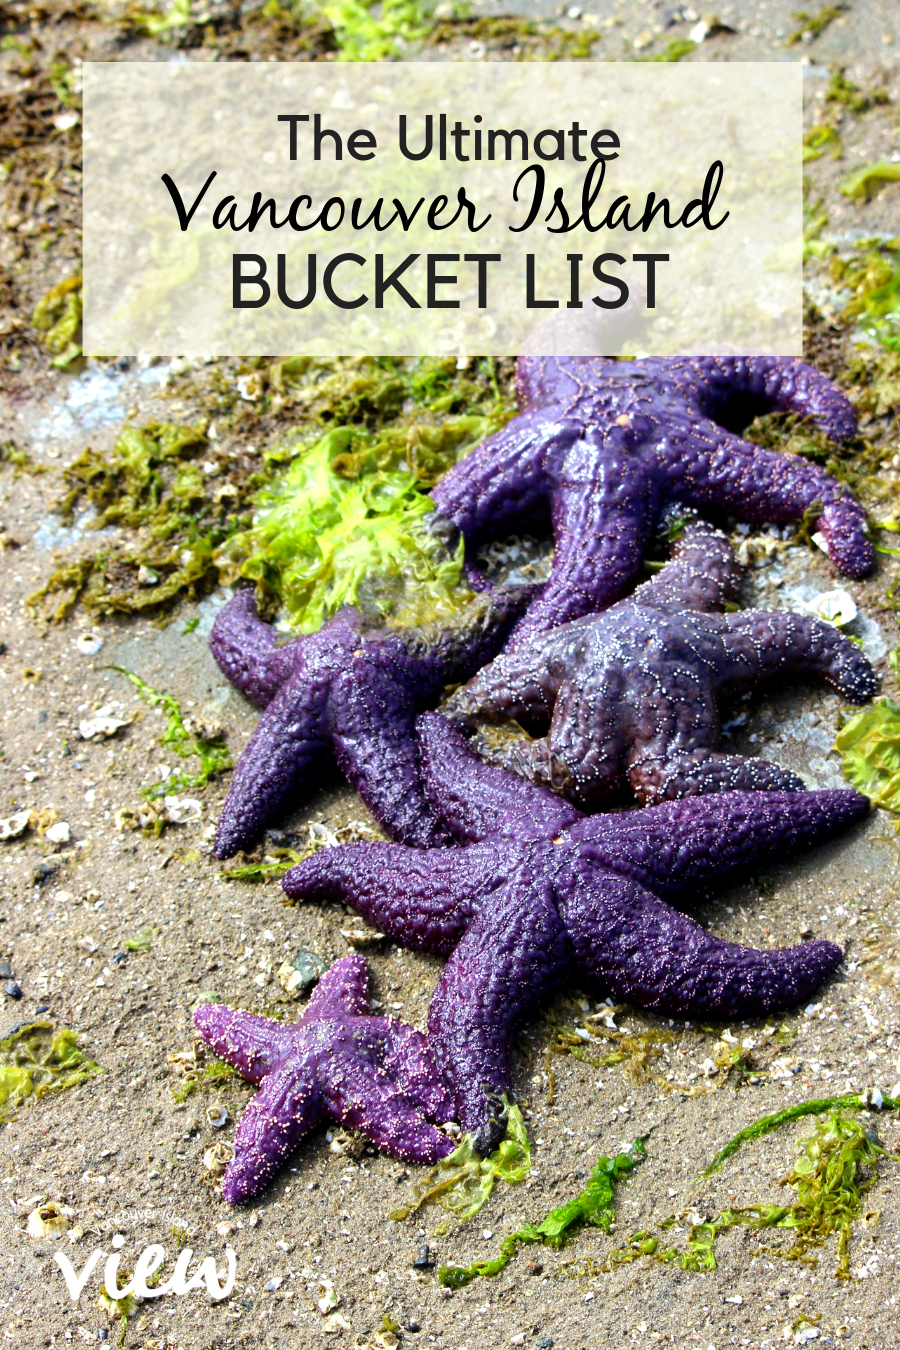 For the best things to see and do on Vancouver Island, check out this ultimate bucket list of ideas. Or use the list to create an epic Vancouver Island road trip. #vancouverisland #exploreBC #bucketlist #traveldestinations #trip